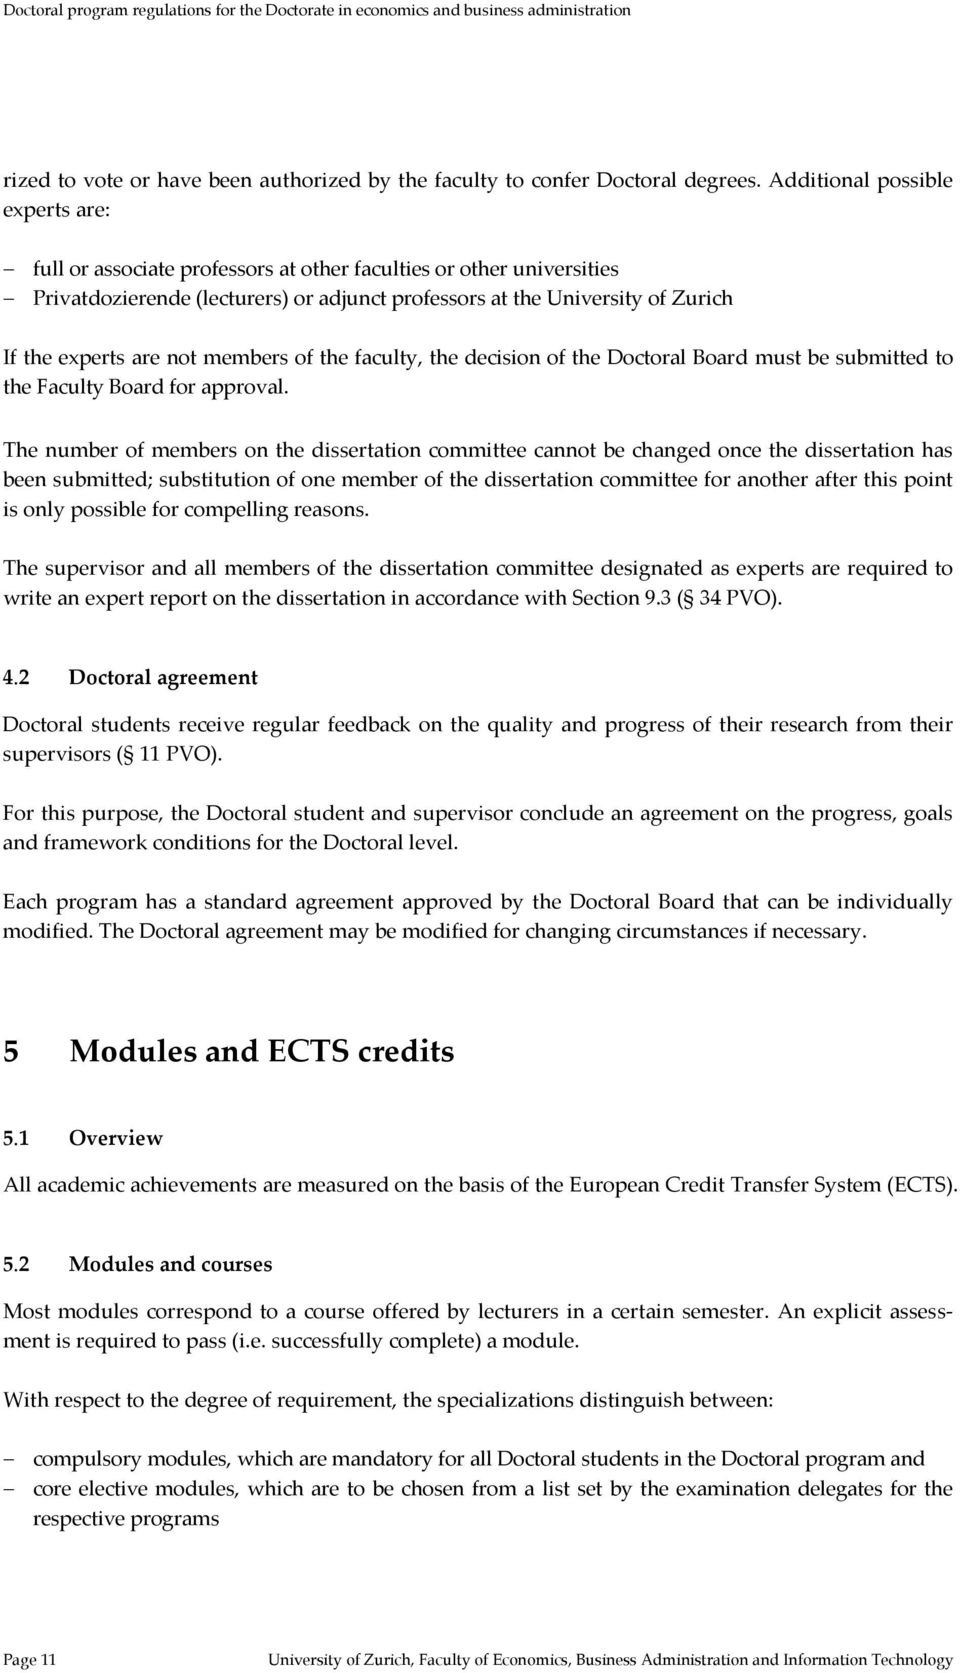 are not members of the faculty, the decision of the Doctoral Board must be submitted to the Faculty Board for approval.